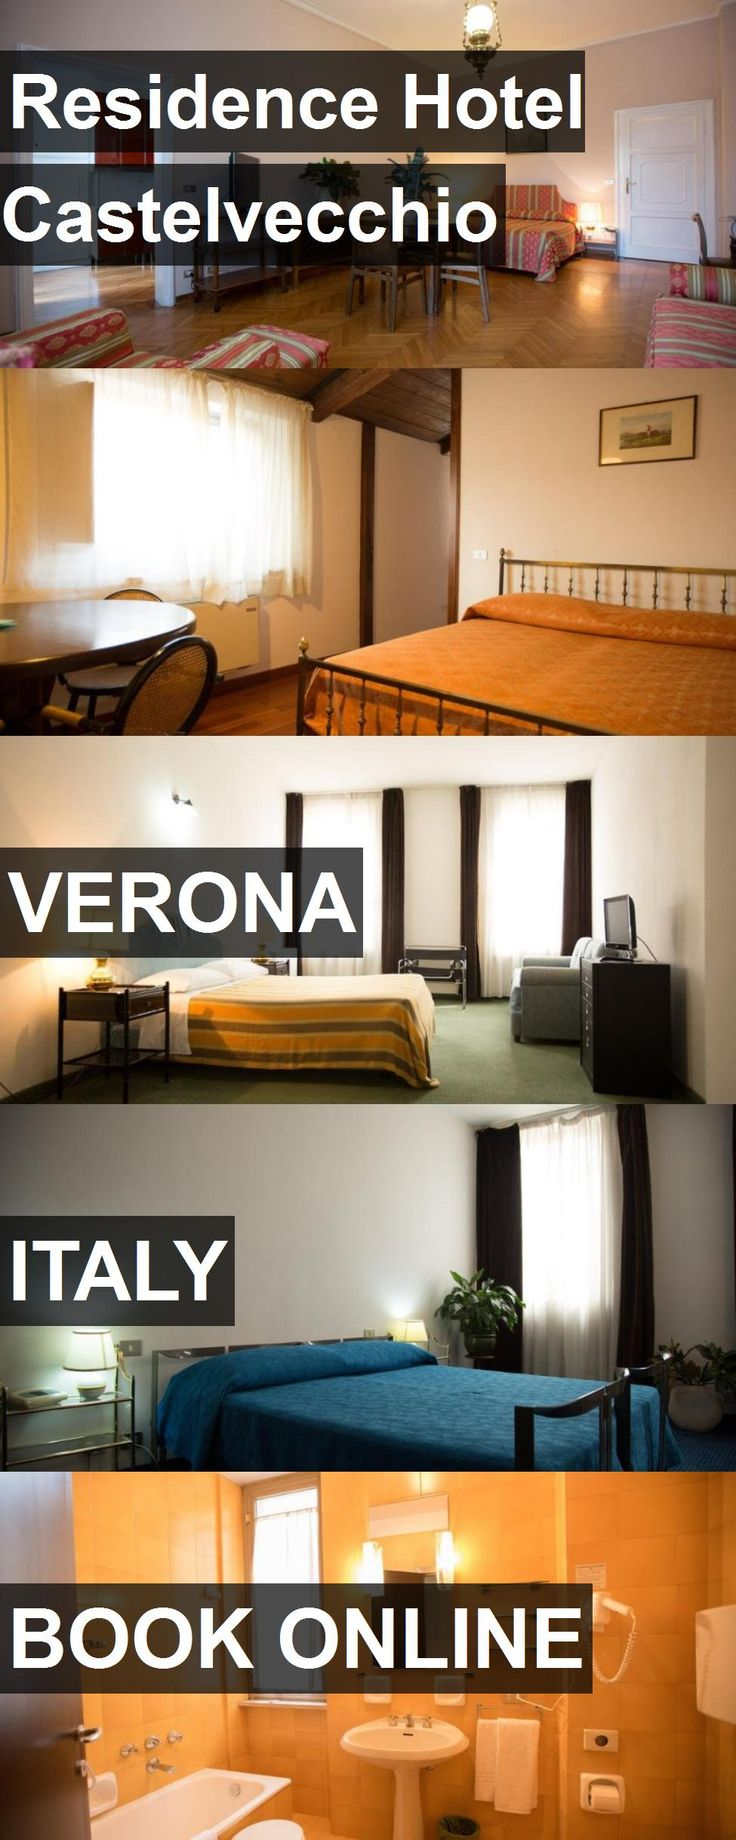 Hotel Residence Hotel Castelvecchio in Verona, Italy. For more information, photos, reviews and best prices please follow the link. #Italy #Verona #hotel #travel #vacation